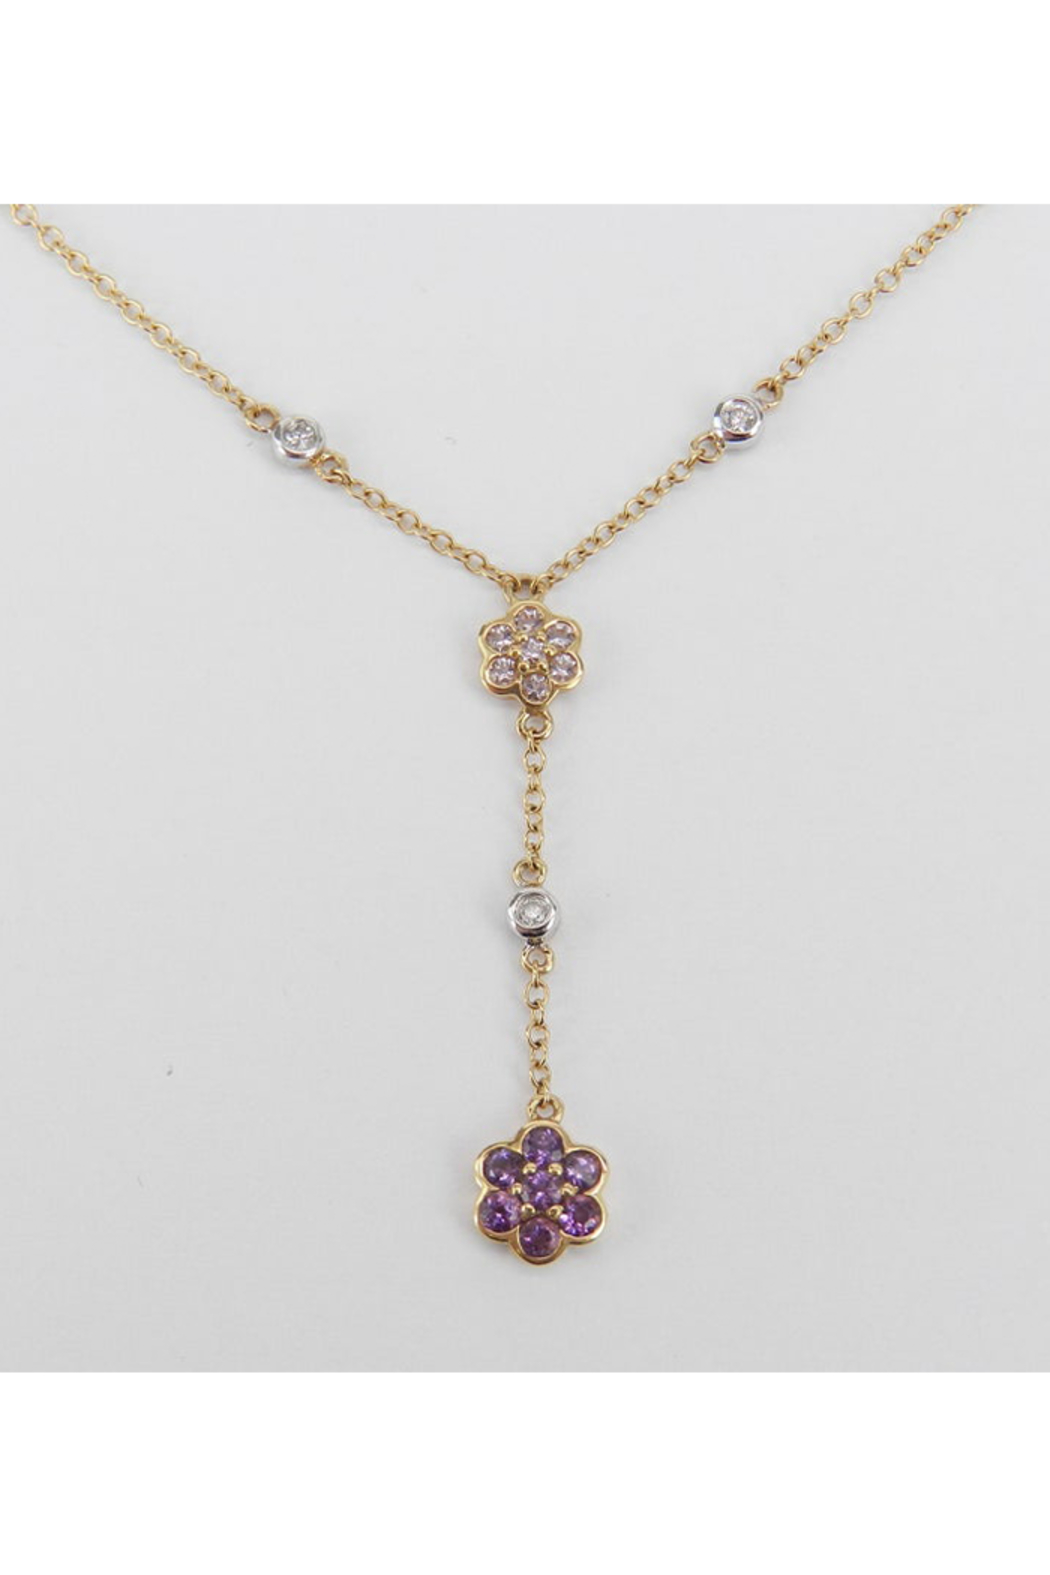 Margolin & Co 14K Yellow Gold Diamond, Tanzanite and Amethyst Flower cluster Necklace - Main Image